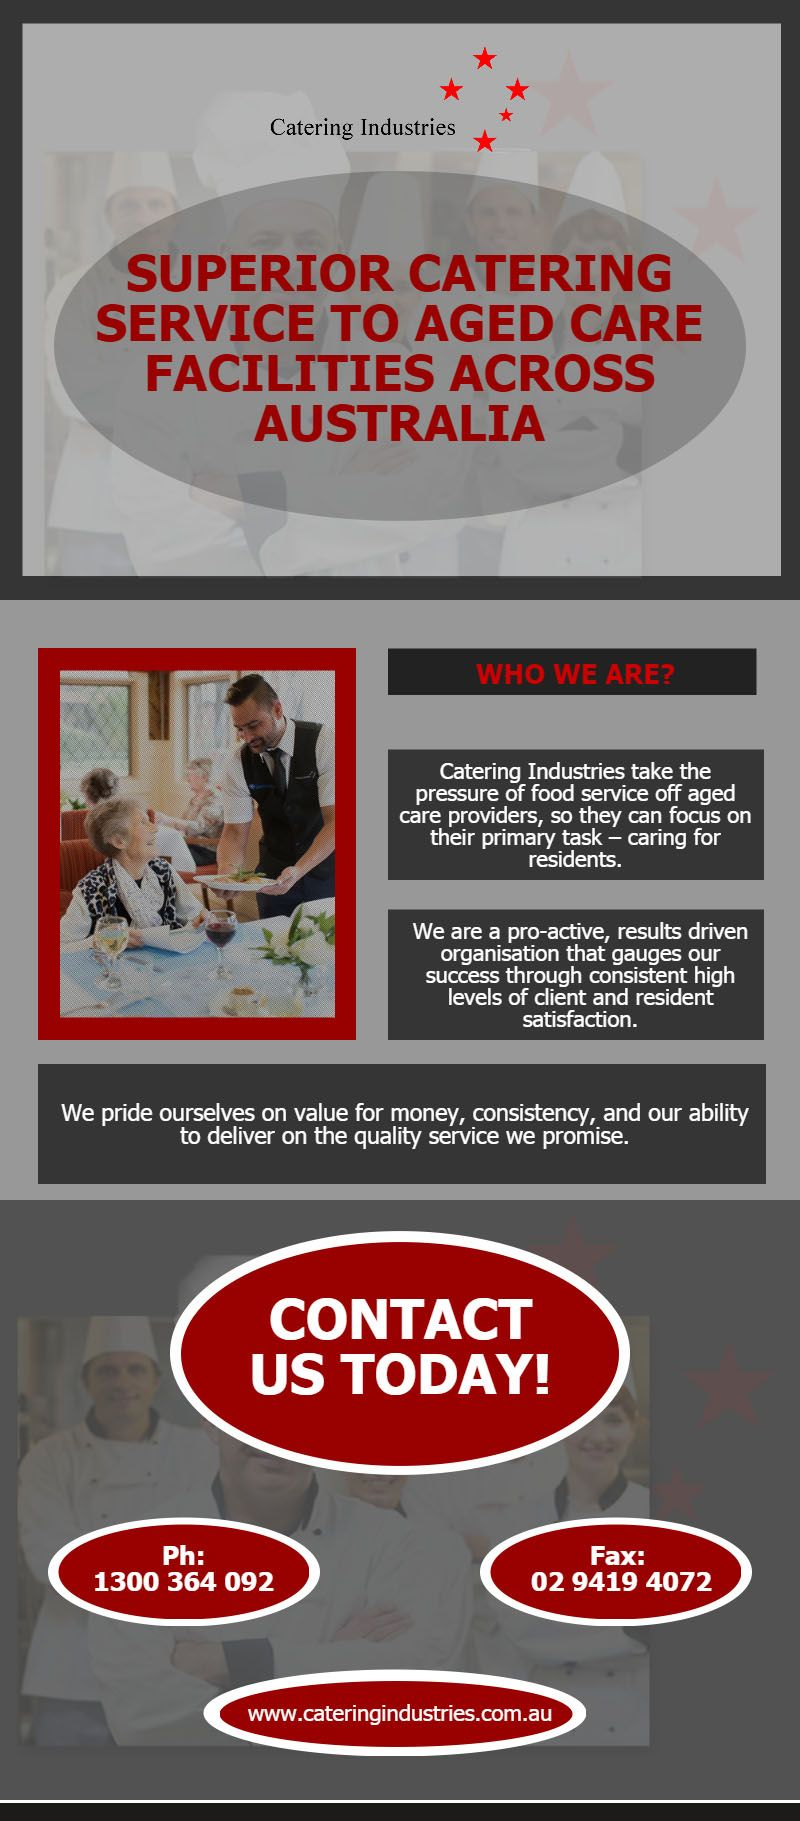 Superior Catering Service To Aged Care Catering Facilities